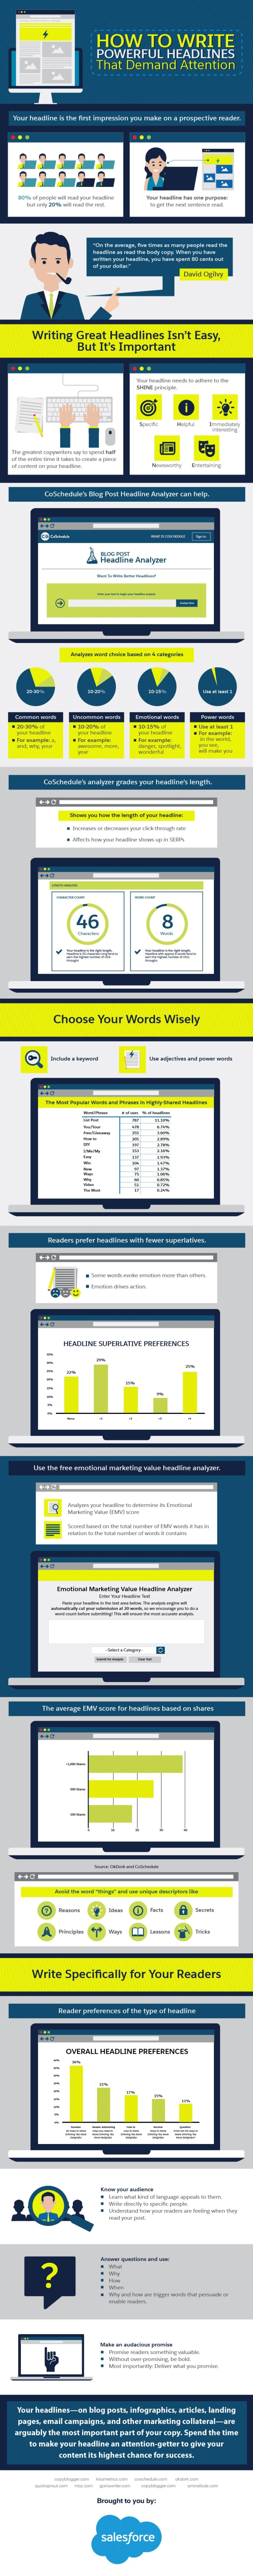 How to Write Powerful Blog Headlines That Generate Tons of Readers